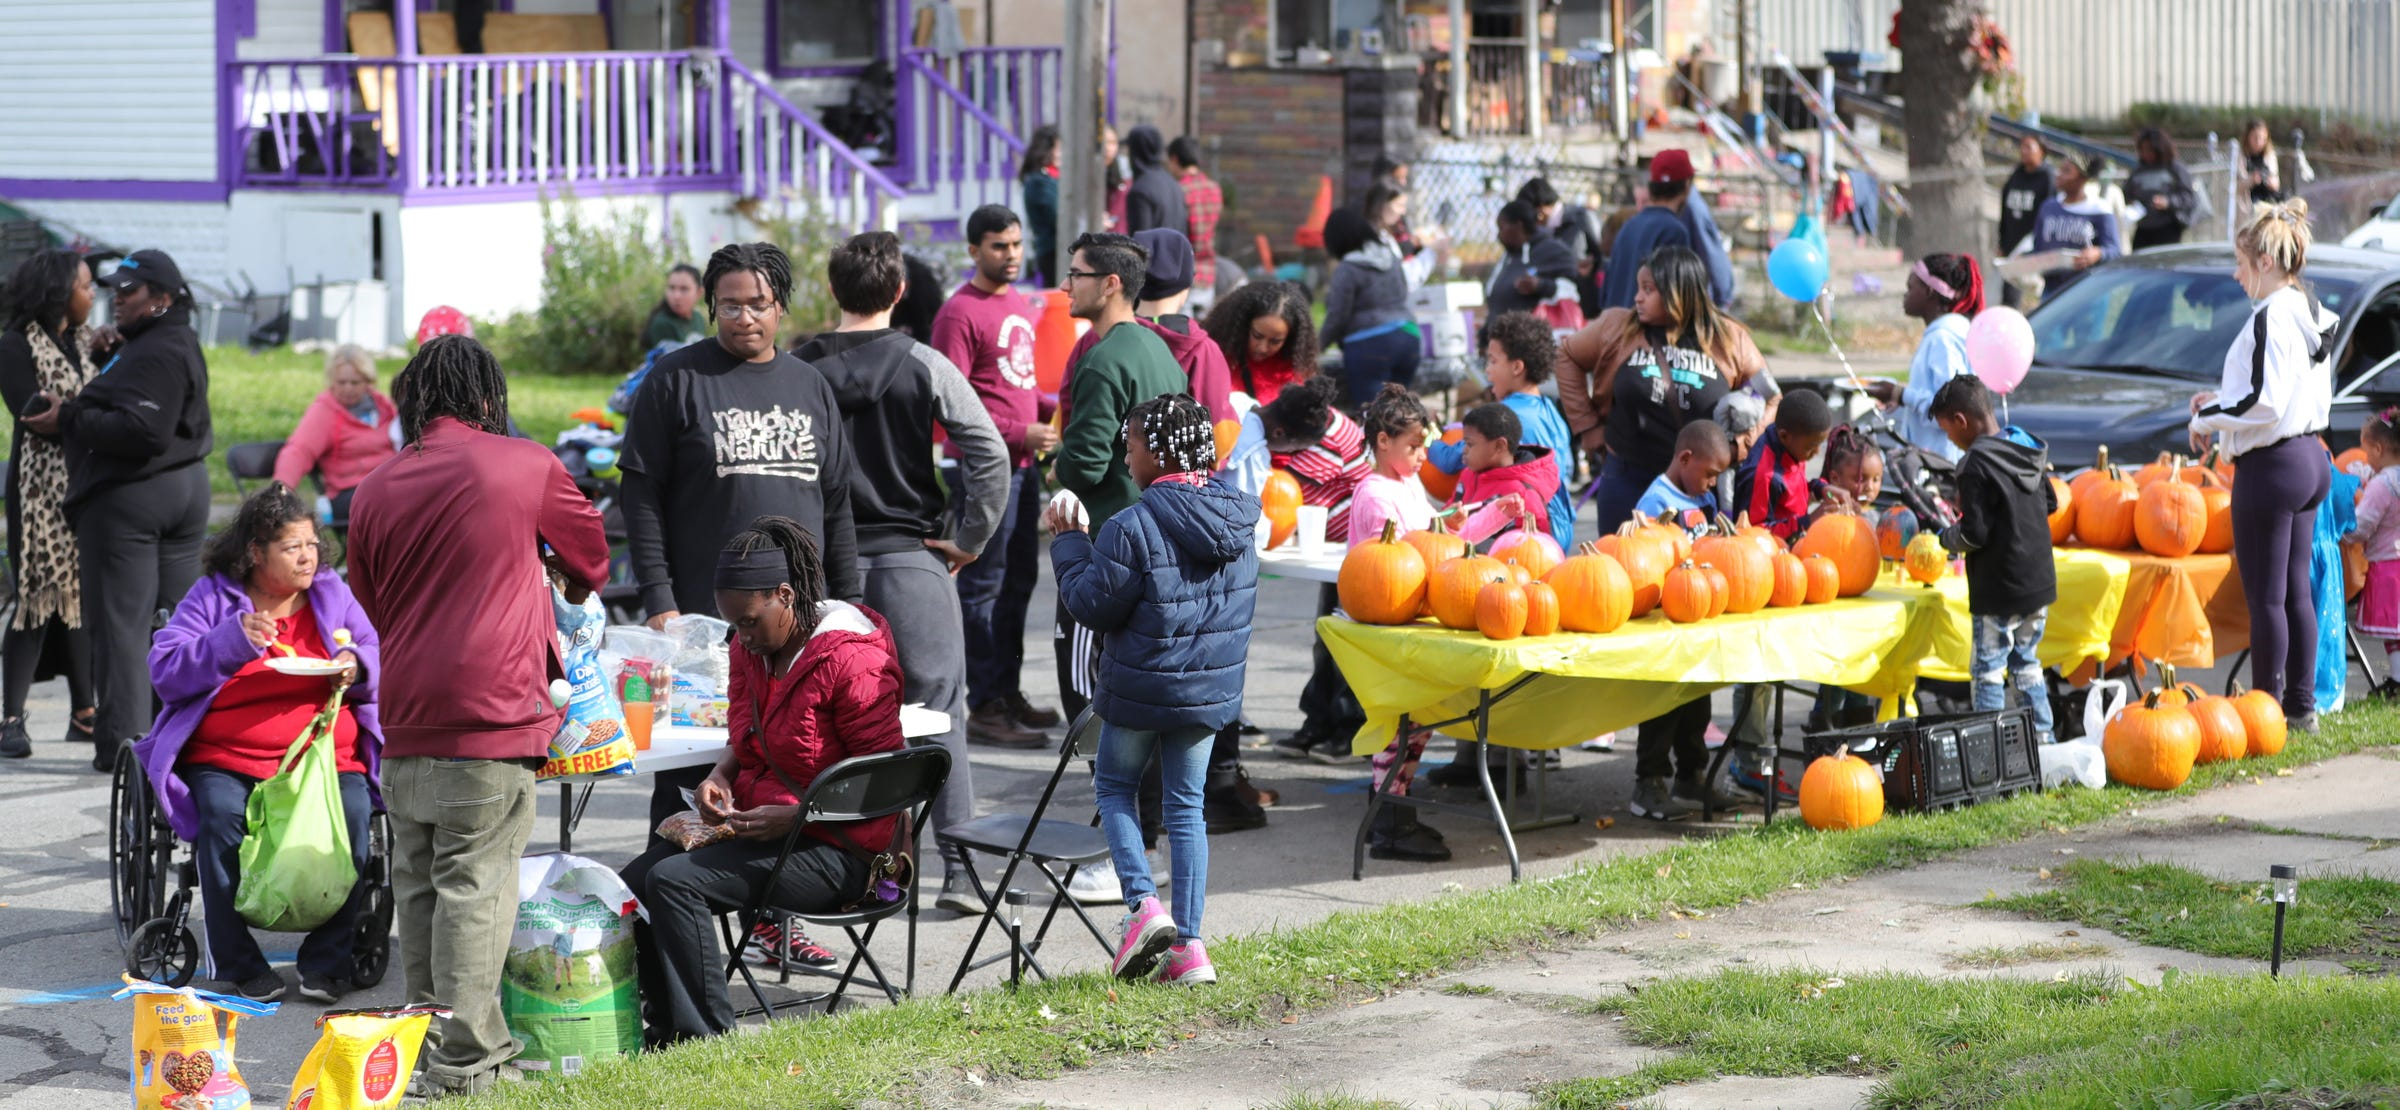 Local residents enjoy activities during the community bazaar put on by Sonia Brown also known as Auntie Na Saturday, October 19, 2019 in Detroit, Mich.